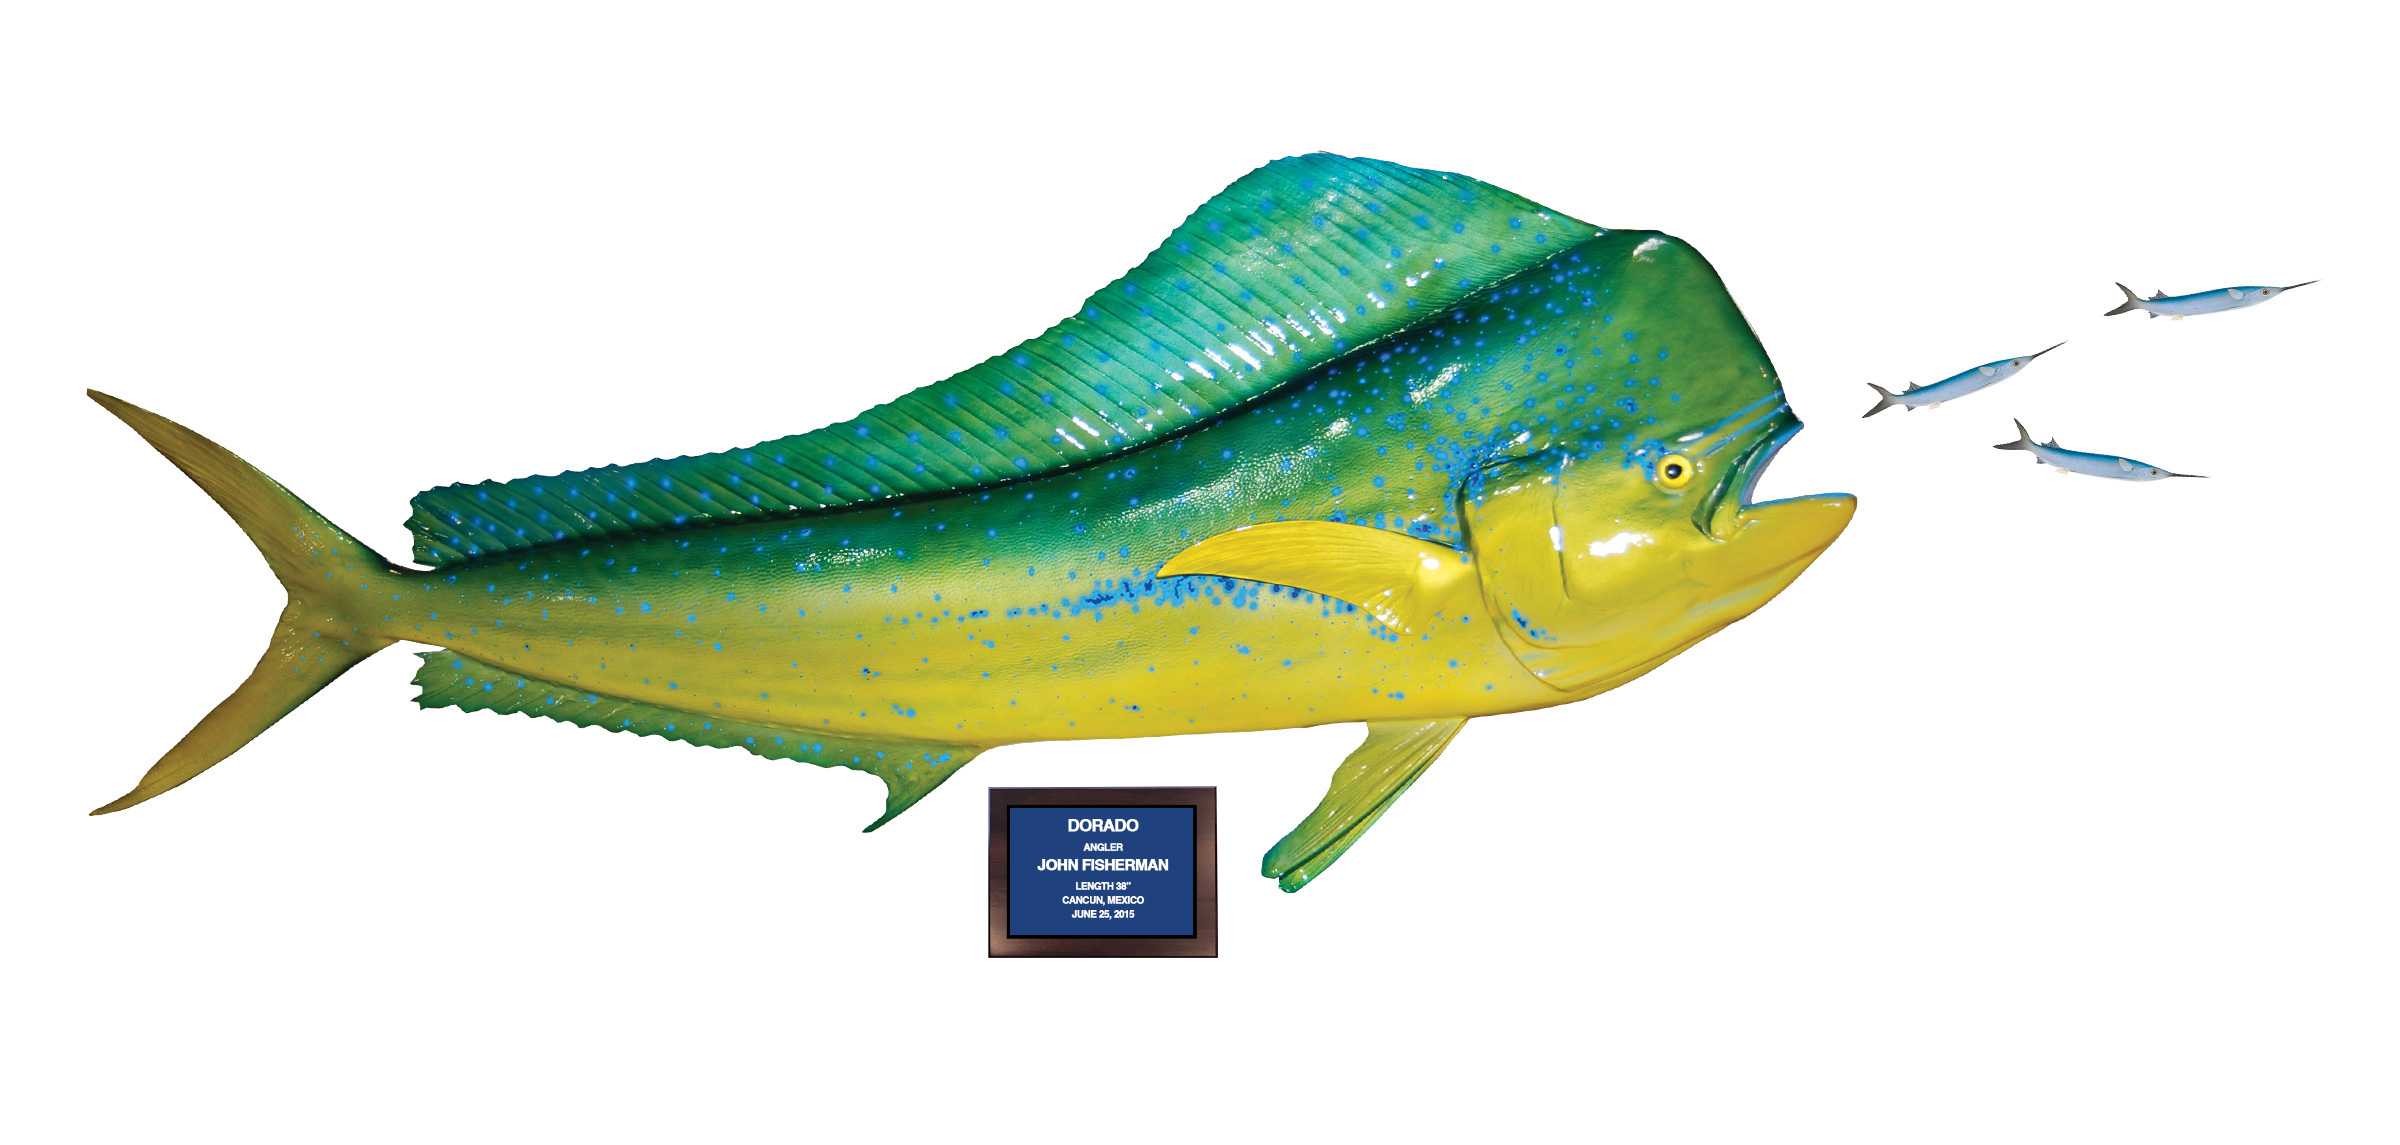 Baitfish mount action scene gallery mounted fish fish for Photos of fish